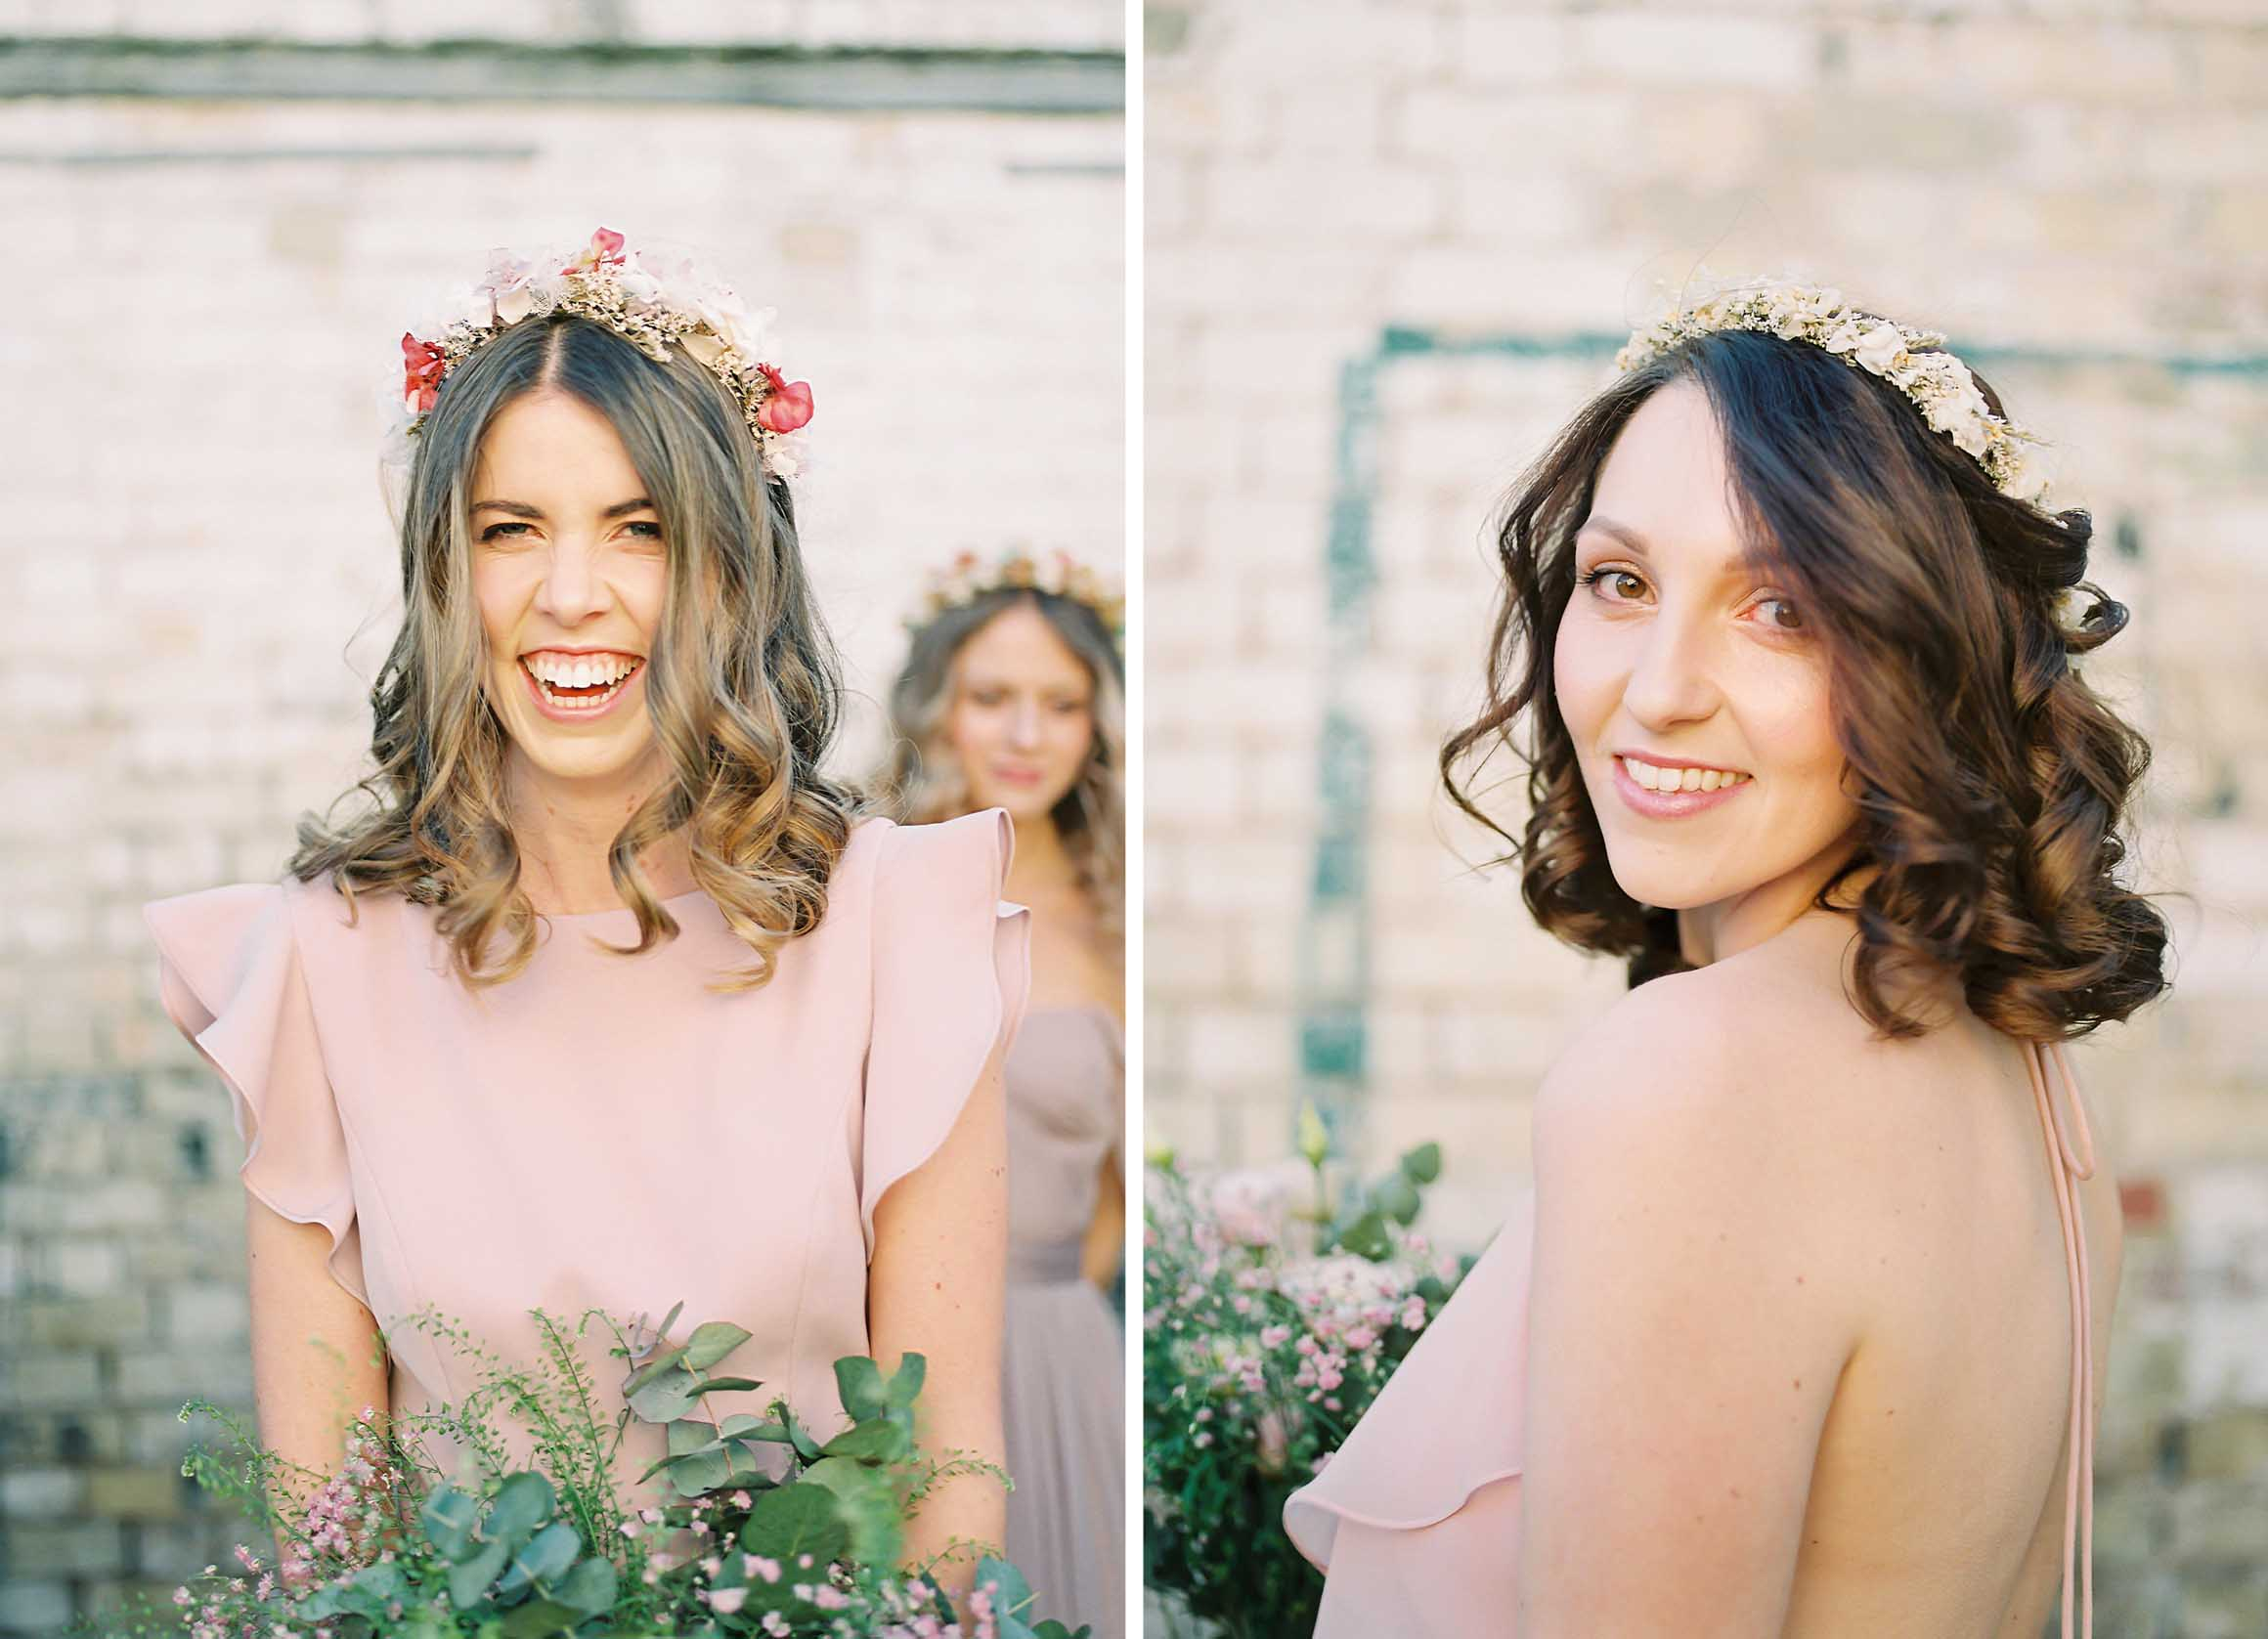 Amy O'Boyle Photography- Destination & UK Fine Art Film Wedding Photographer- TH&TH Bridesmaid Dress Shoot 7.jpg